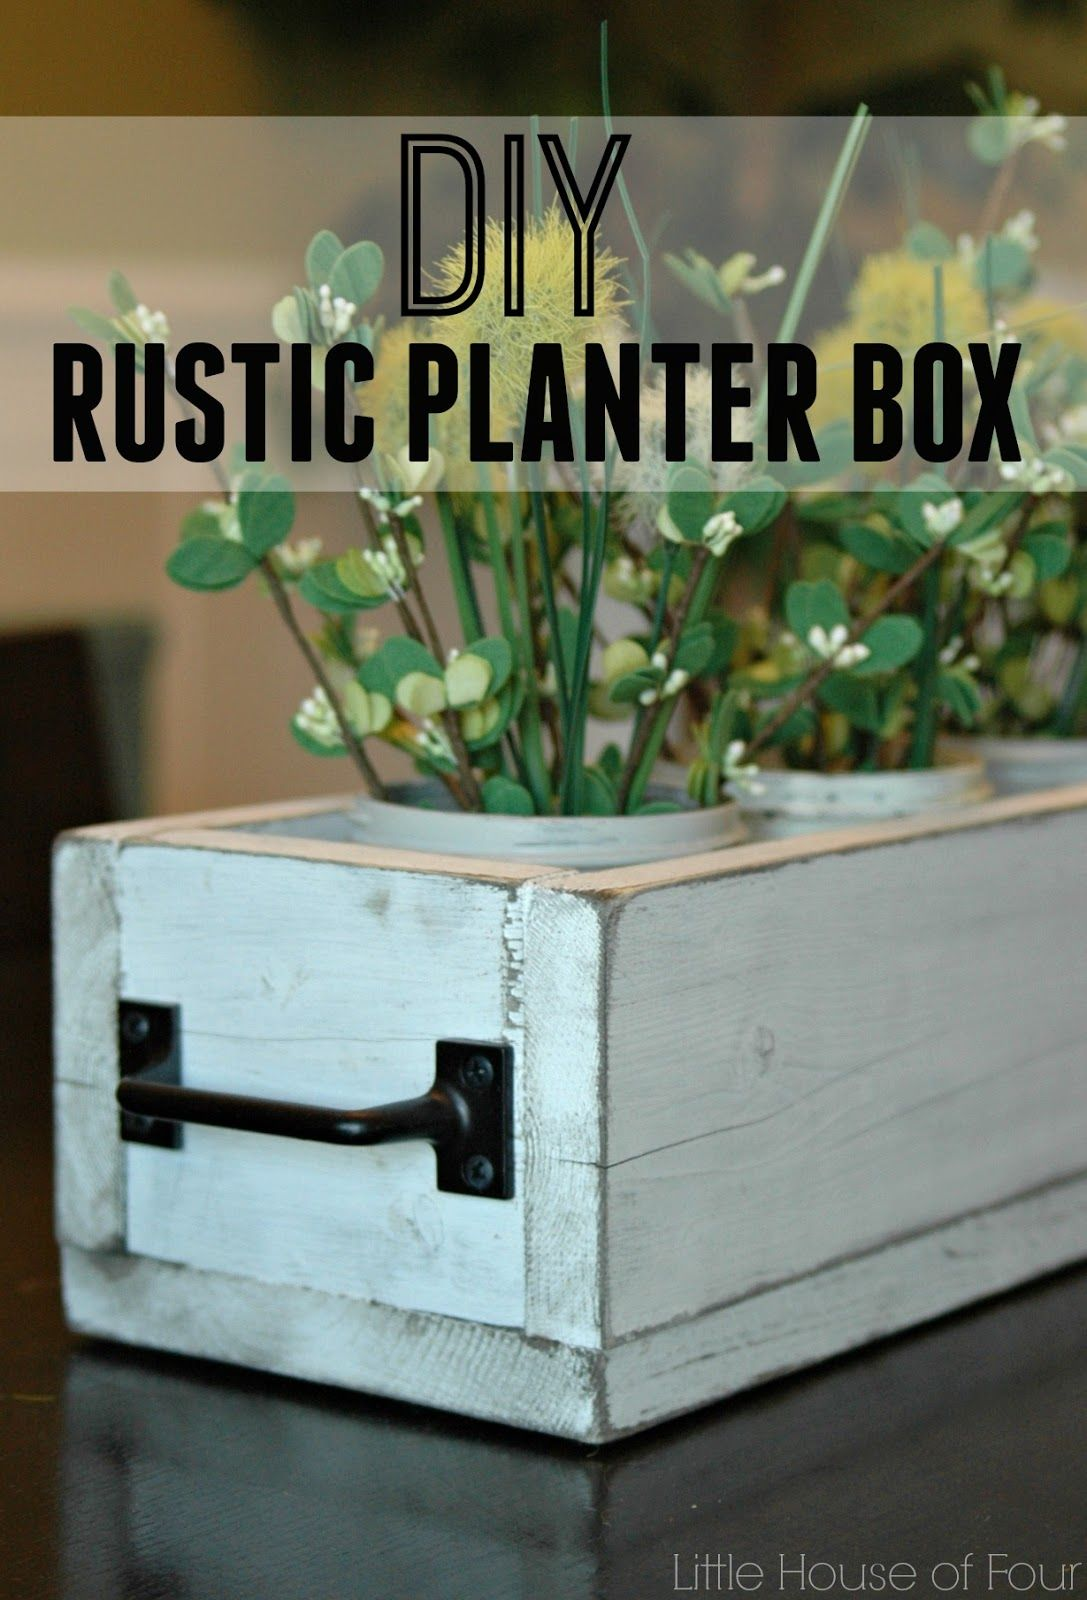 Diy rustic wood dining table - Rustic Dining Table Planter Box